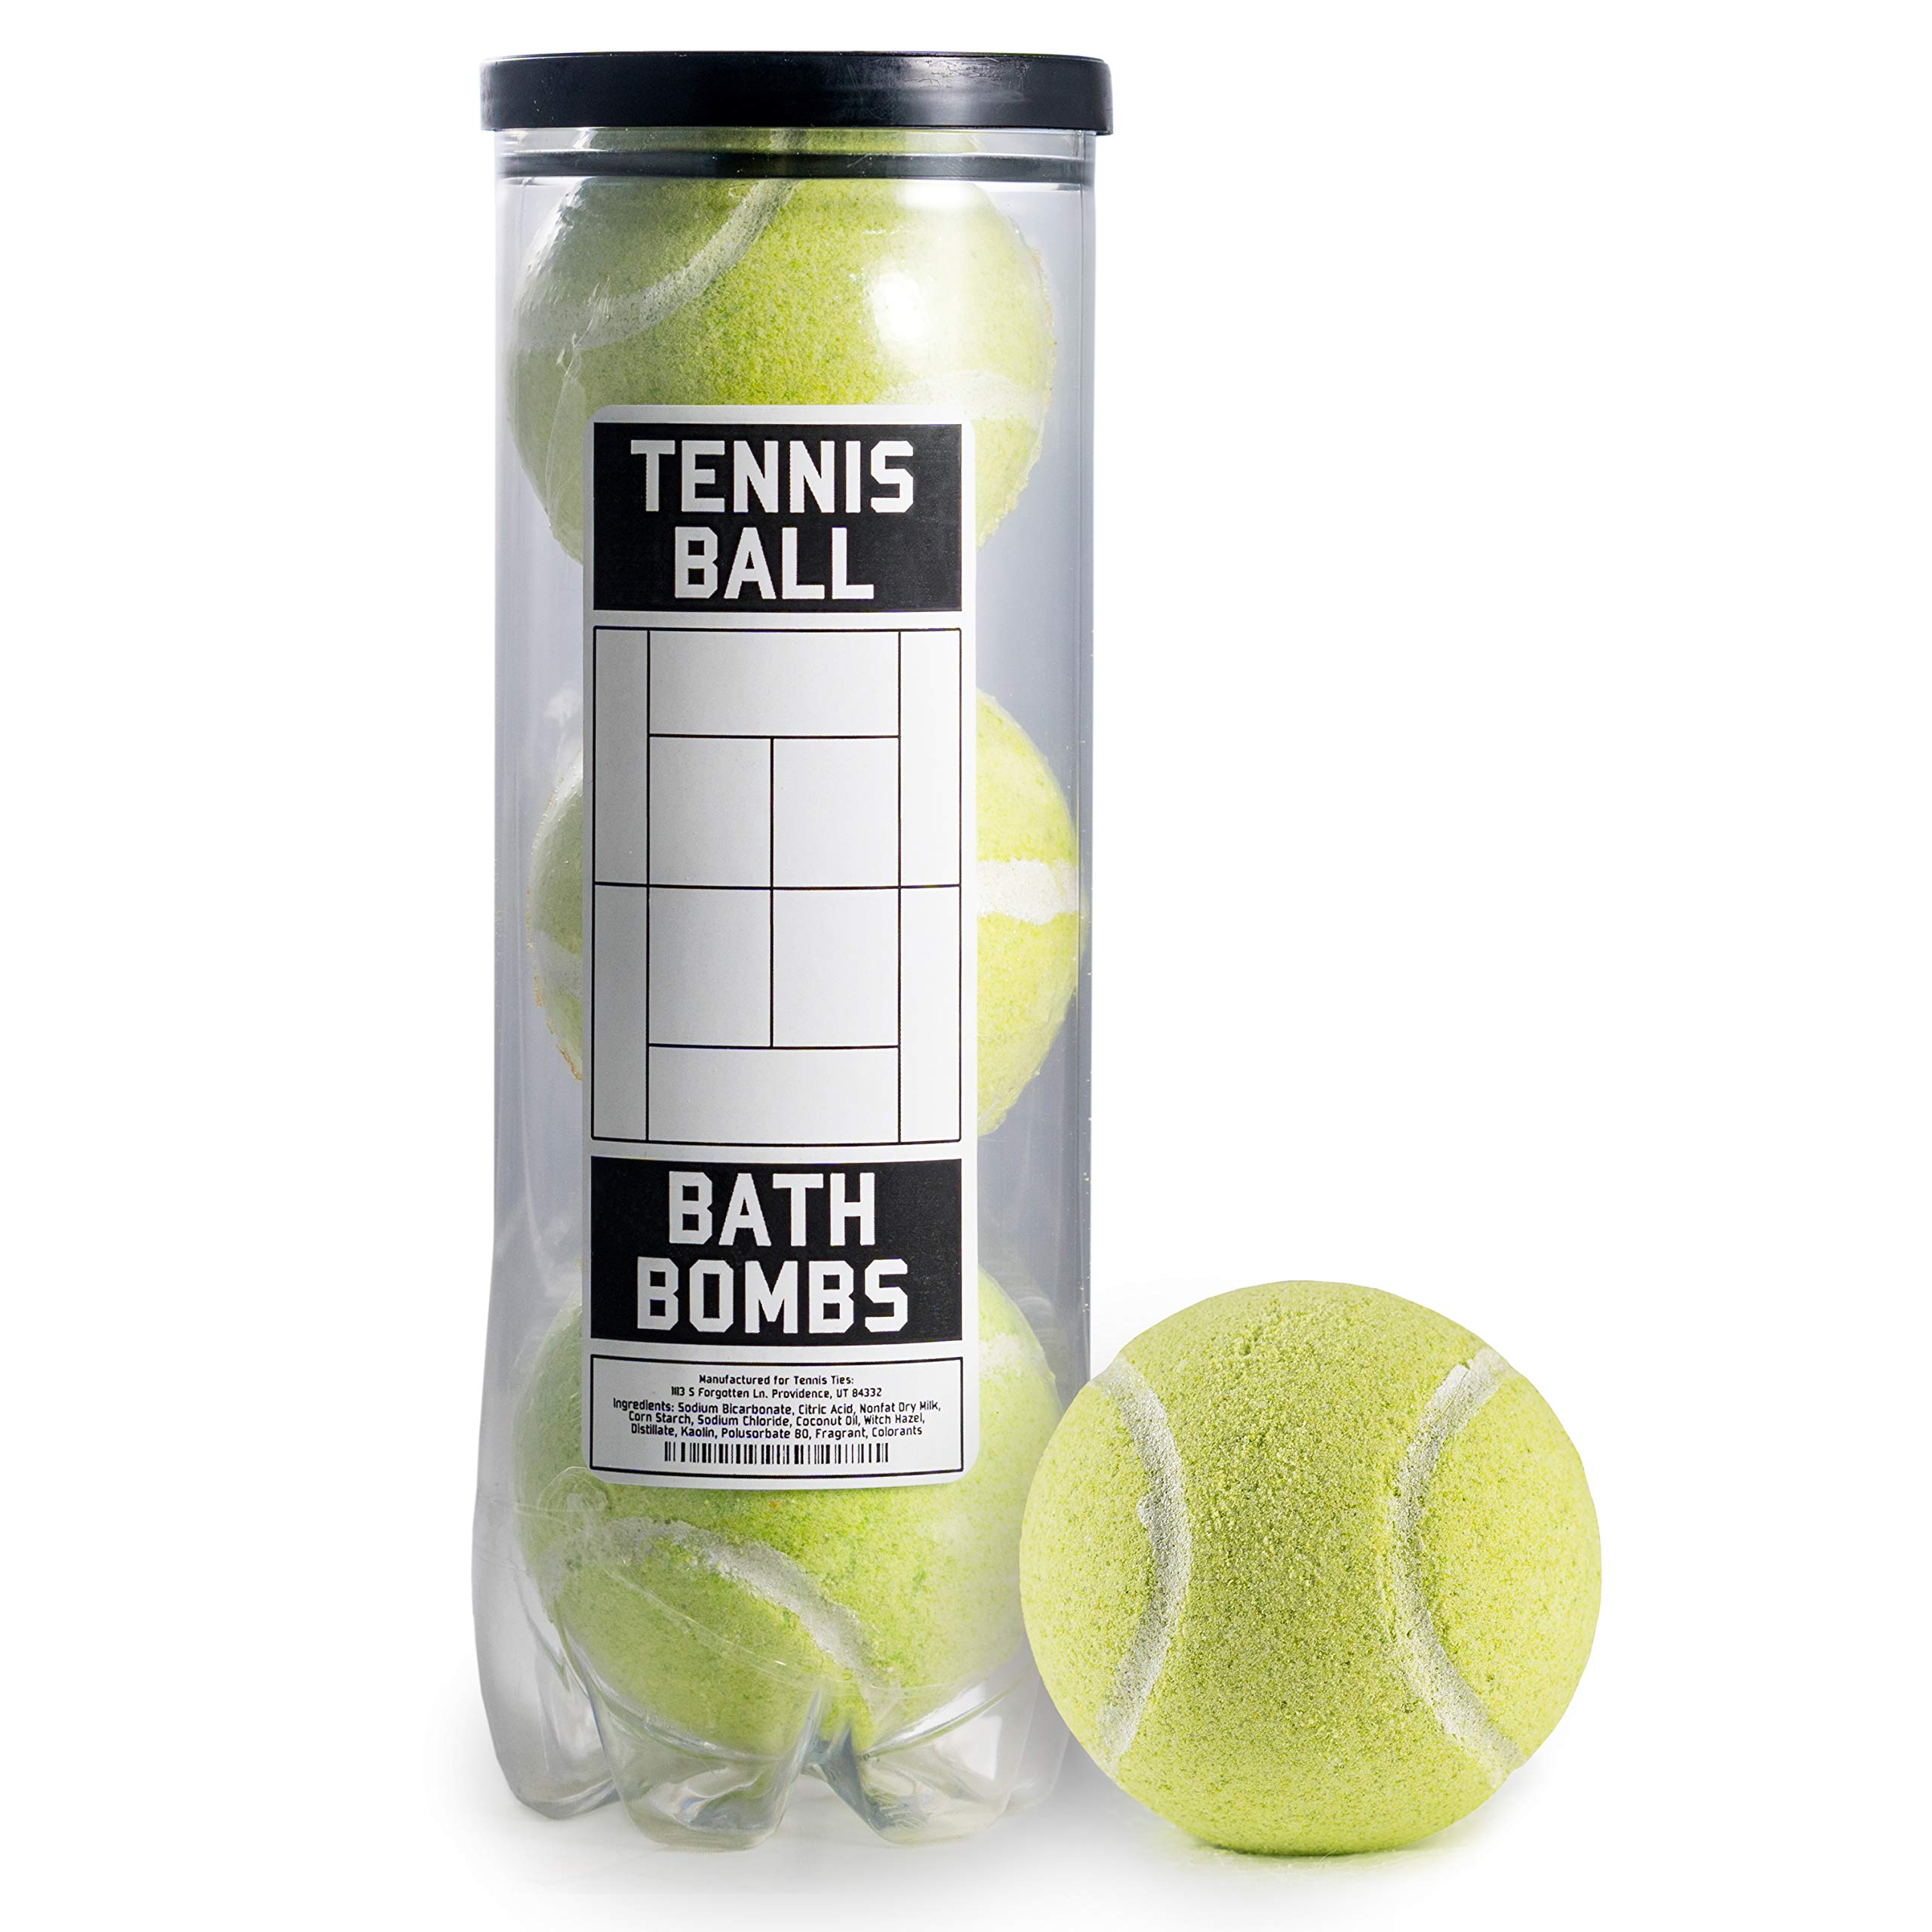 Amazon.com : Tennis Ball Bath Bombs - 3 pack - Large, 6 oz Scented Bath Bomb Fizzies - Great Gift for Players, Women, Girls, Birthdays, Coaches, Opponents, ...